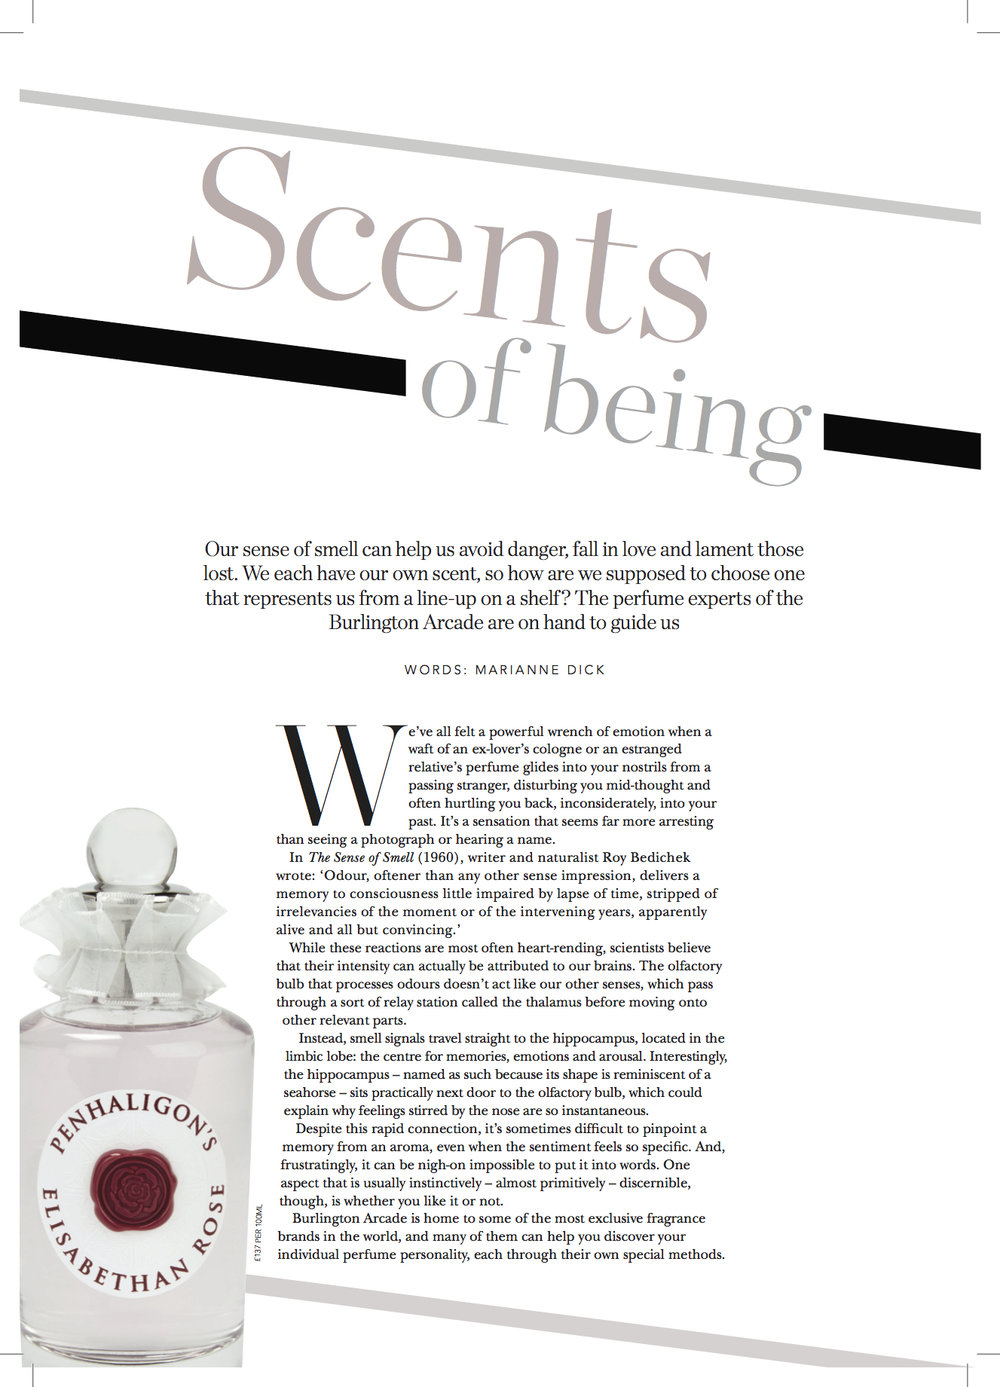 068 MAYF MAY 18 BEAUTY FEATURE - PERFUME.jpg